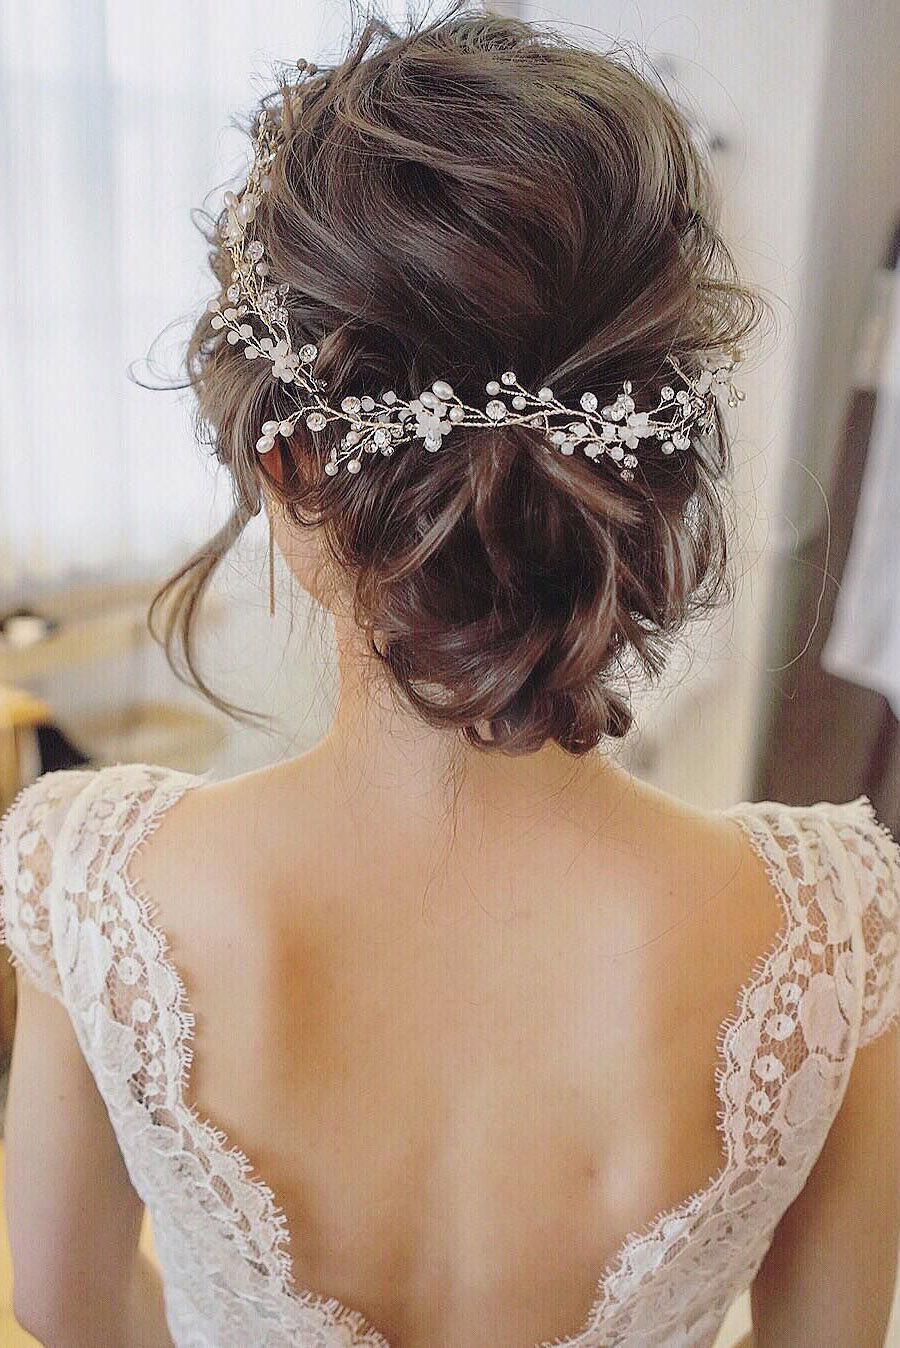 Hairstyles For Brides Alluring Sweet Updo Hairstyles For Shorter Hair Brides  Wedding Hairstyles